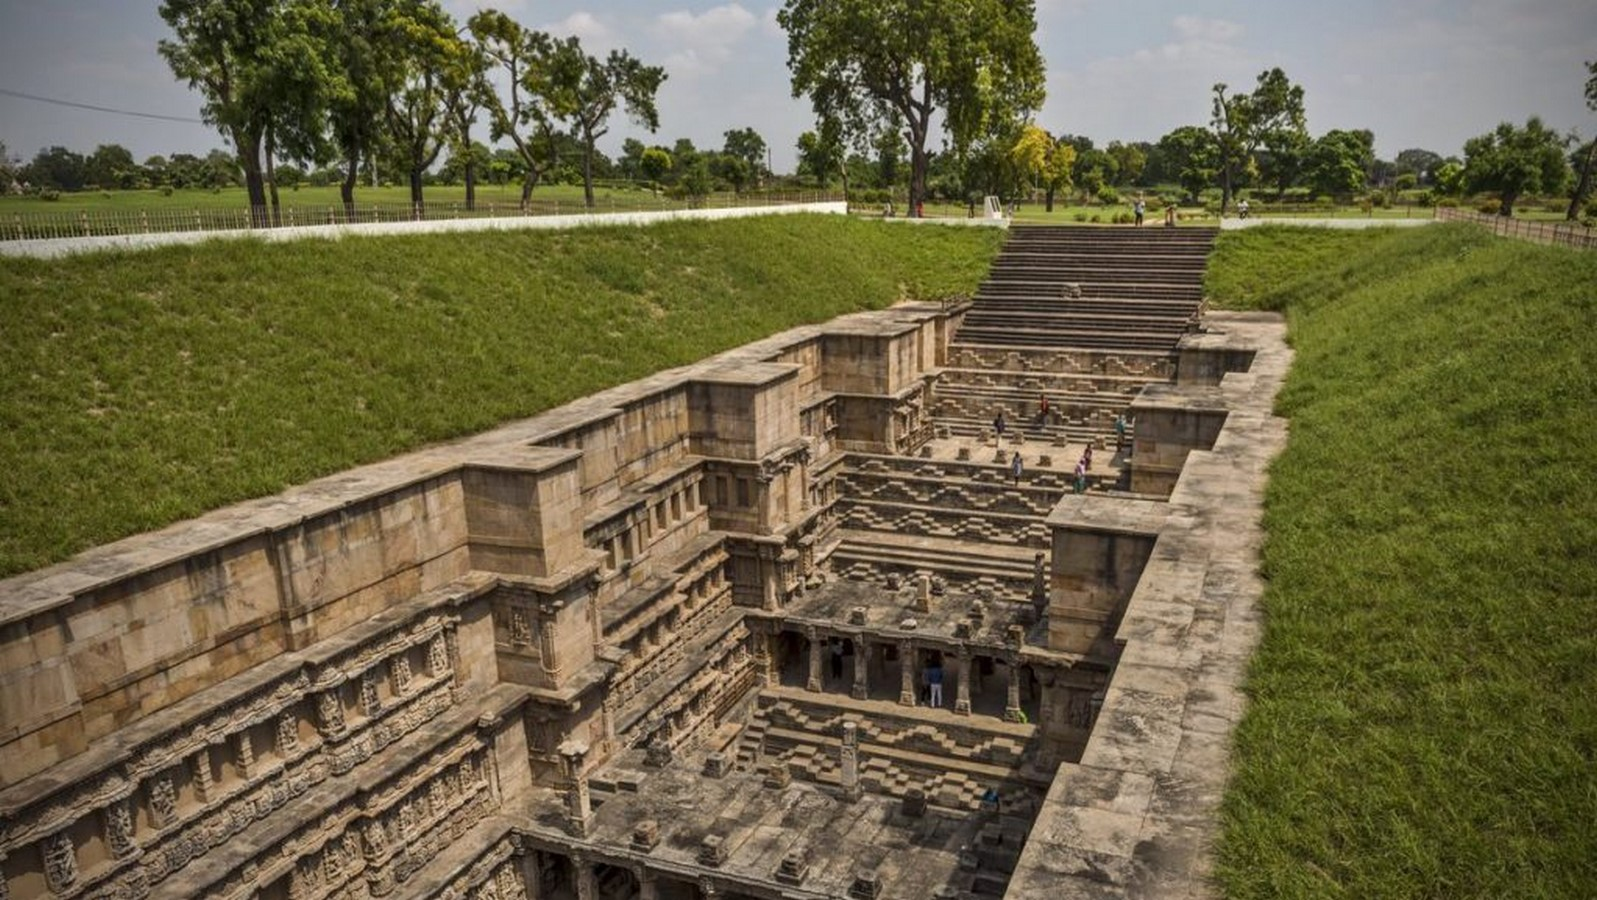 10 Historical buildings in India where architecture reflects ancient stories - Sheet6